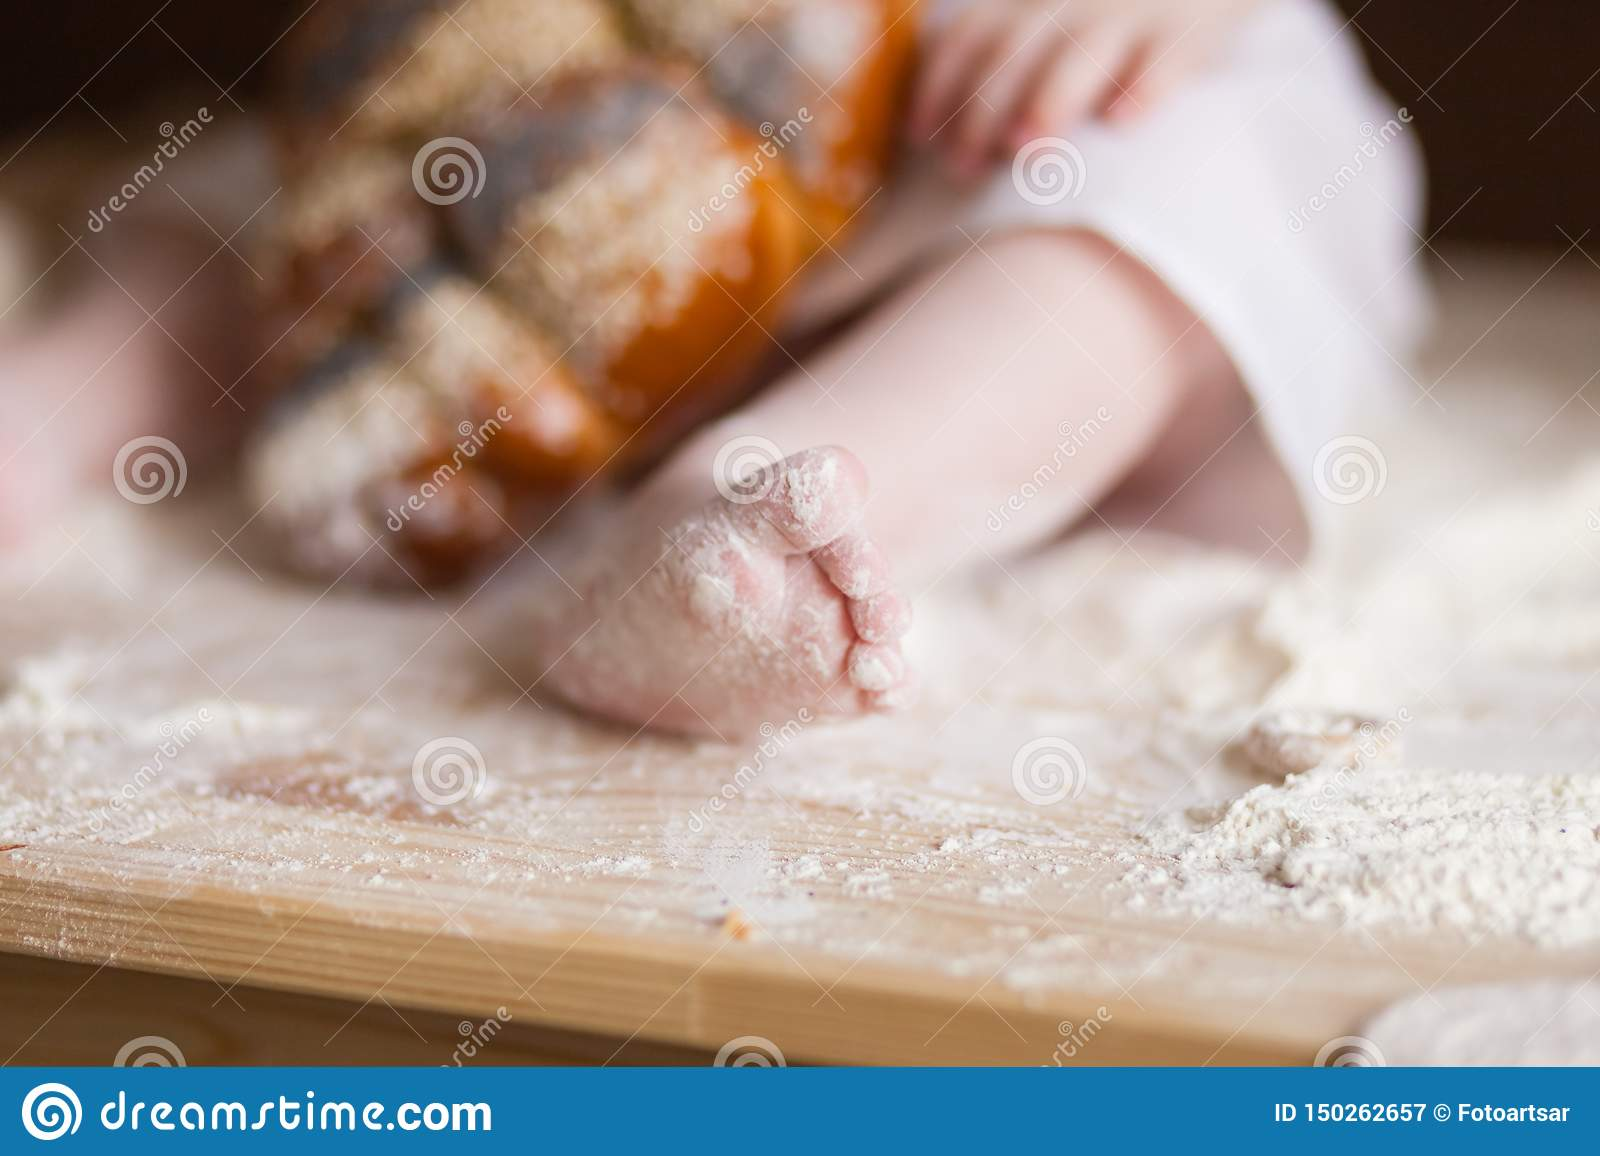 Baby Feet In Flour, Buns, Bread, Bagels, Kitchen Still Life